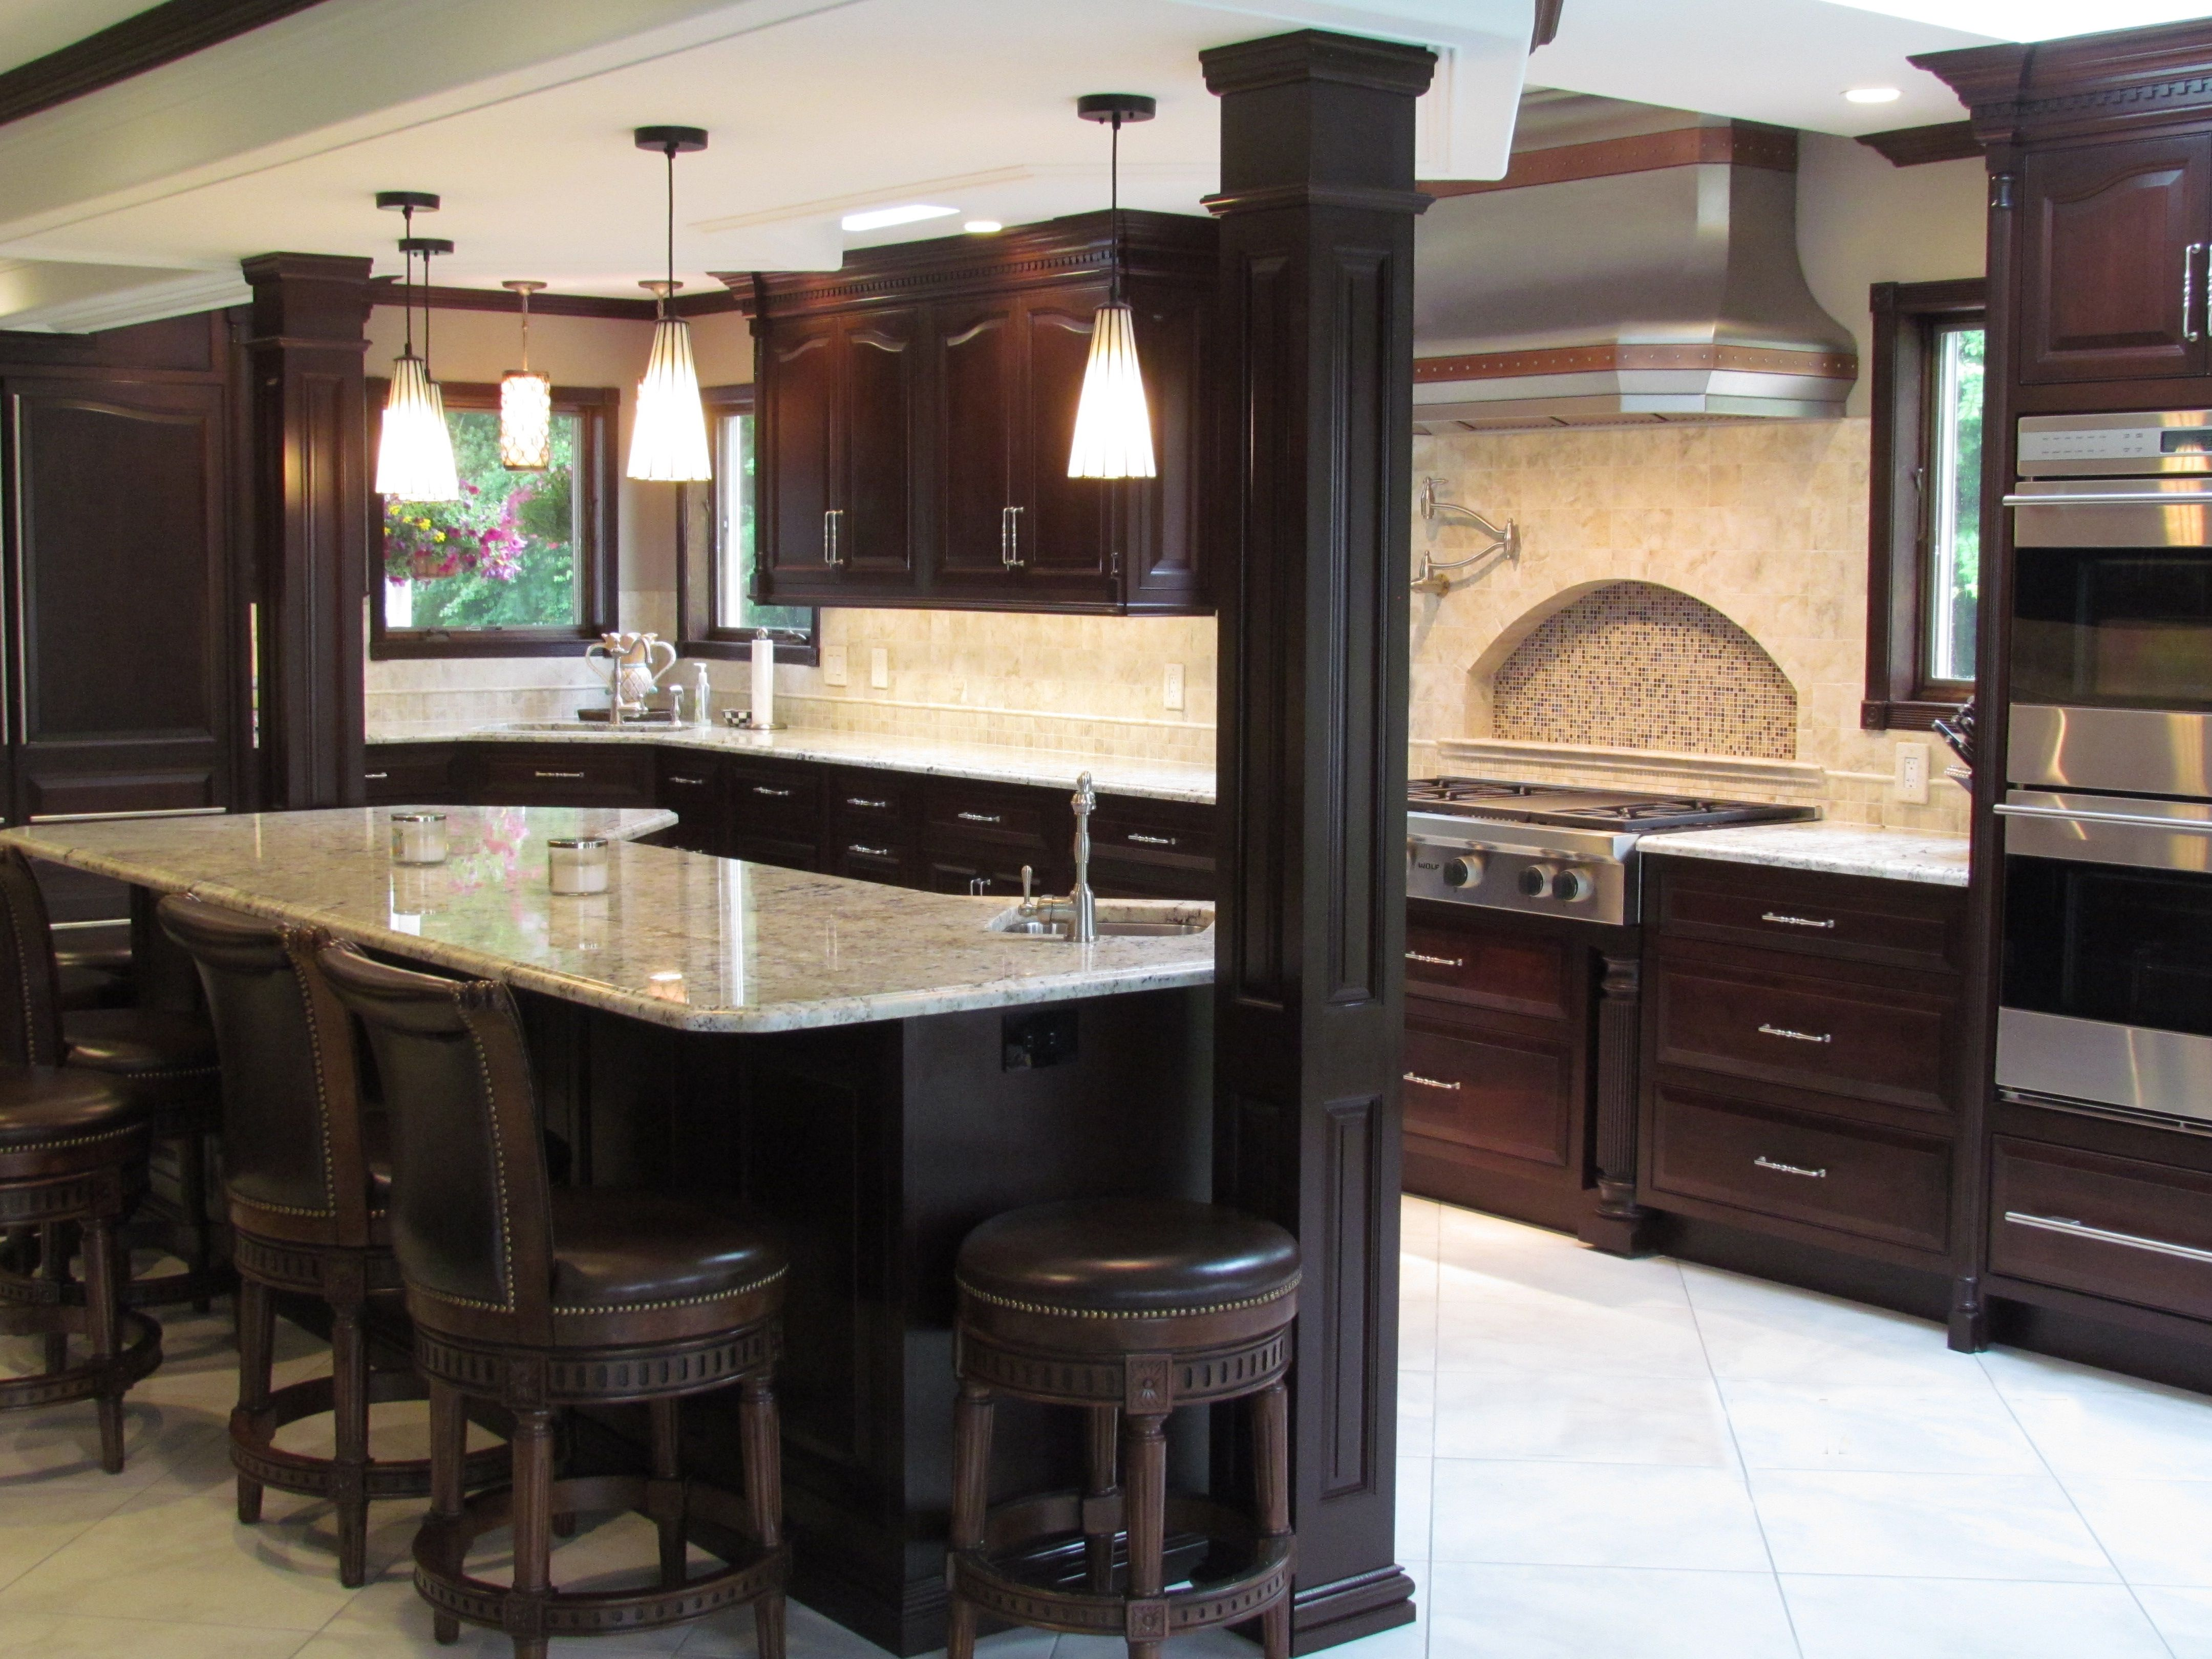 Pin by Kitchen Express, Inc. on Cherry Cabinets | Cherry ...